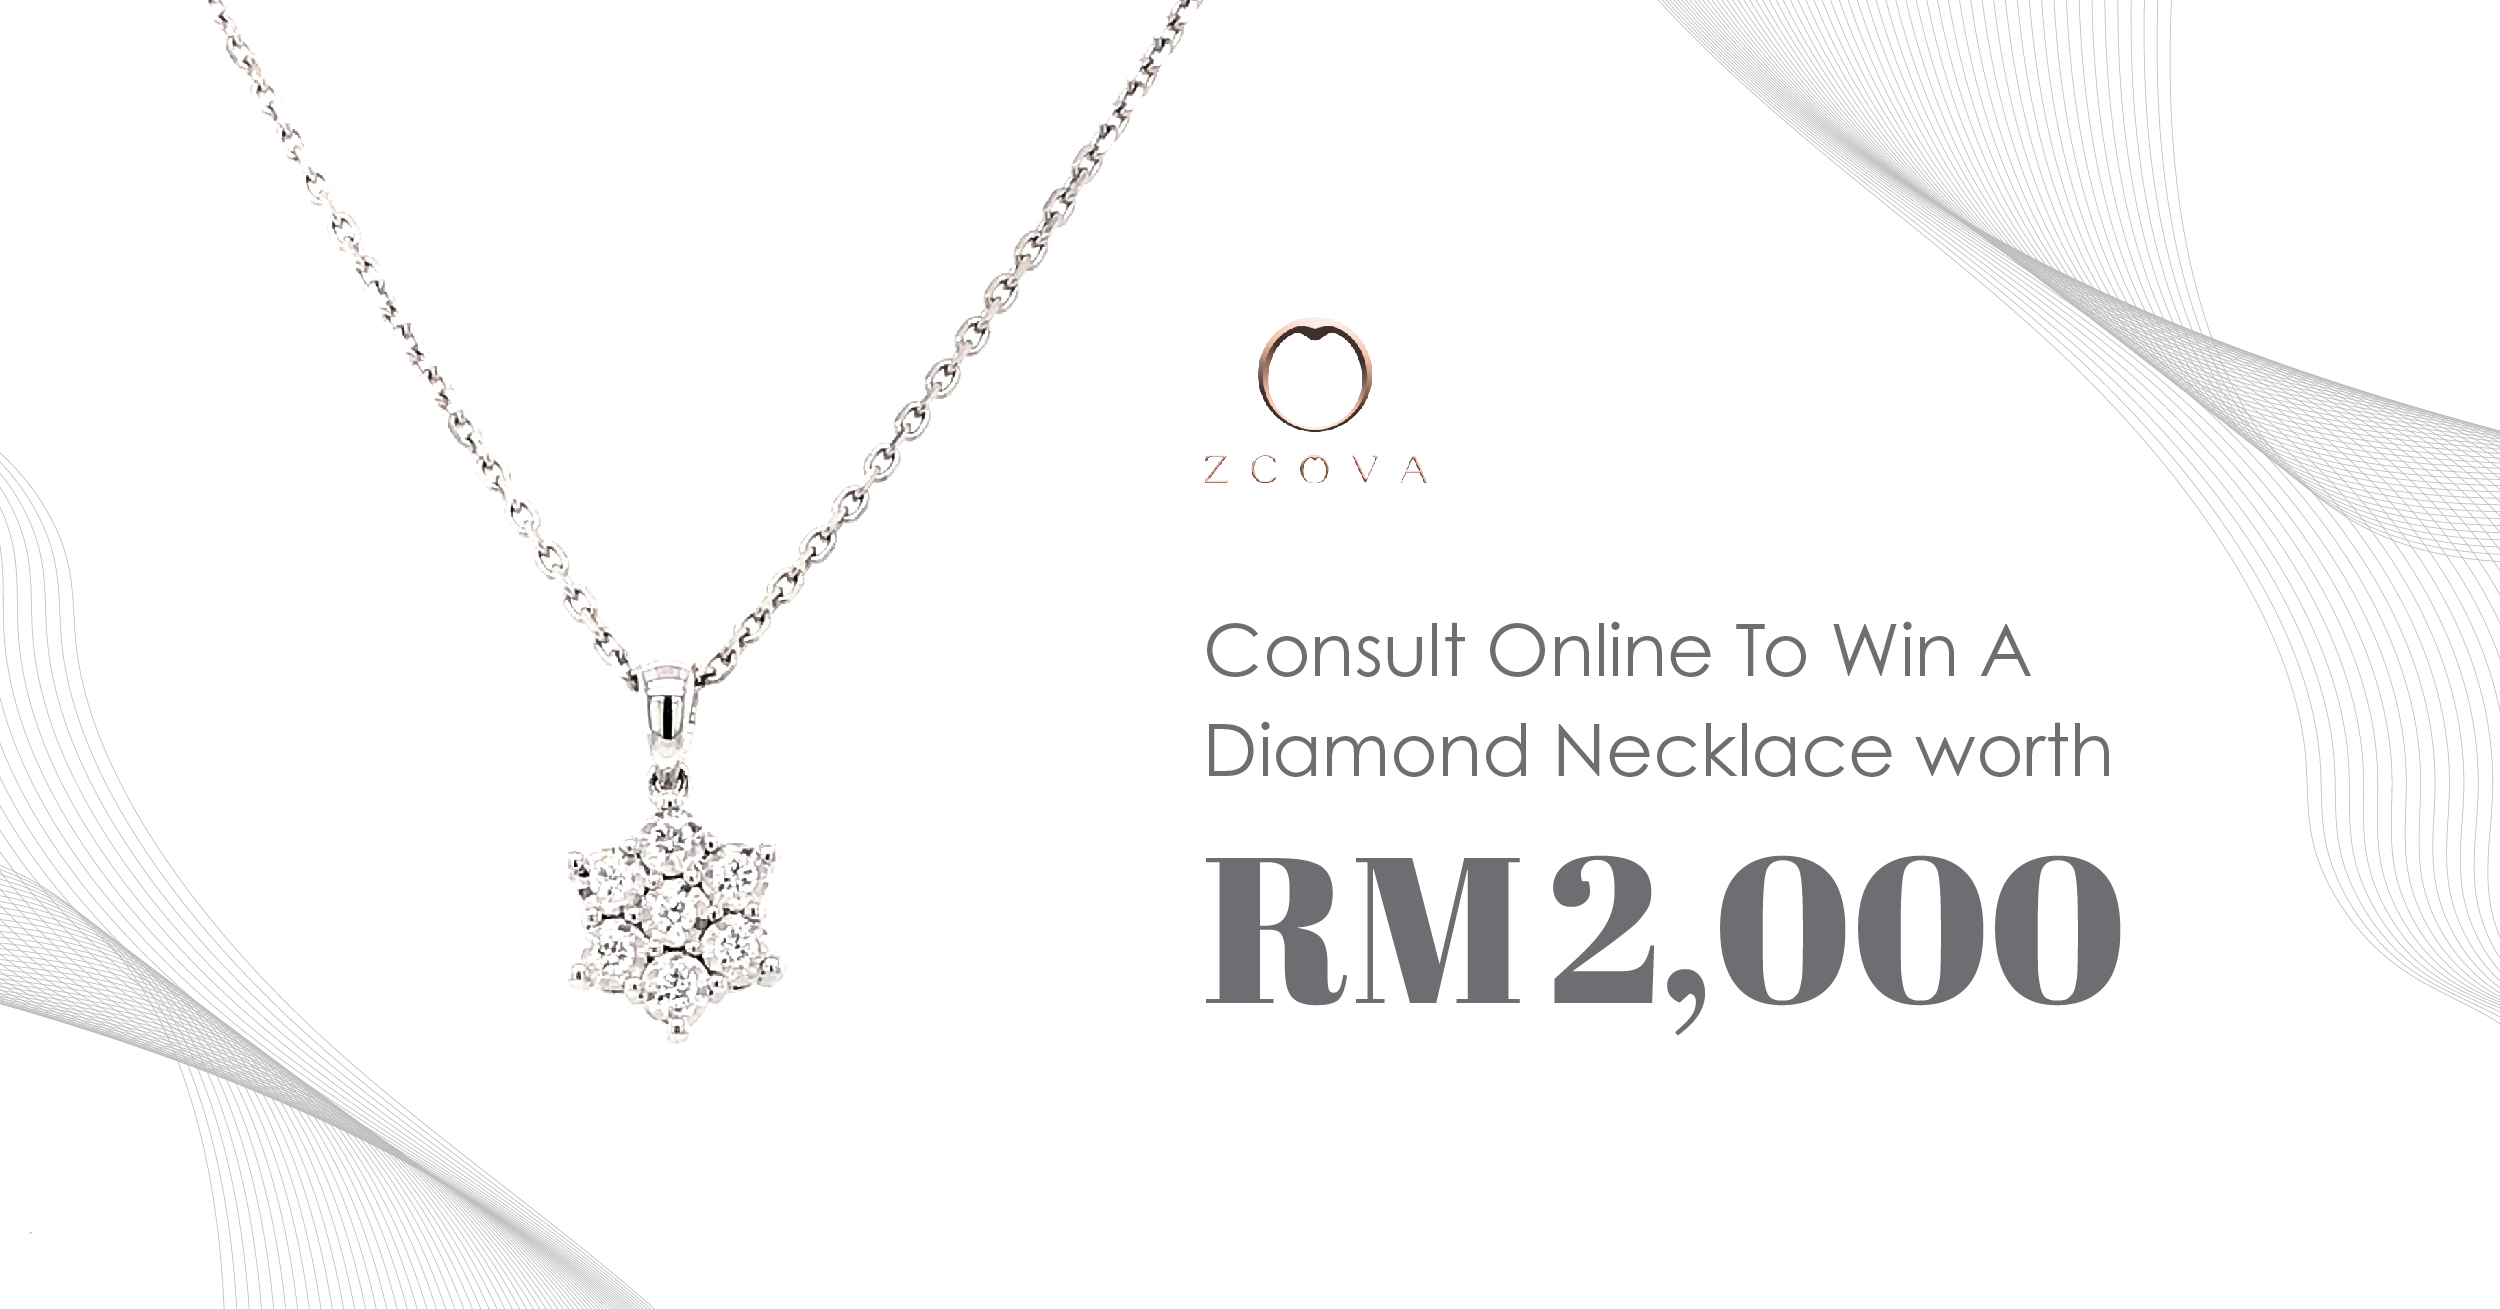 Consult Online & Win A Diamond Necklace worth RM 2,000